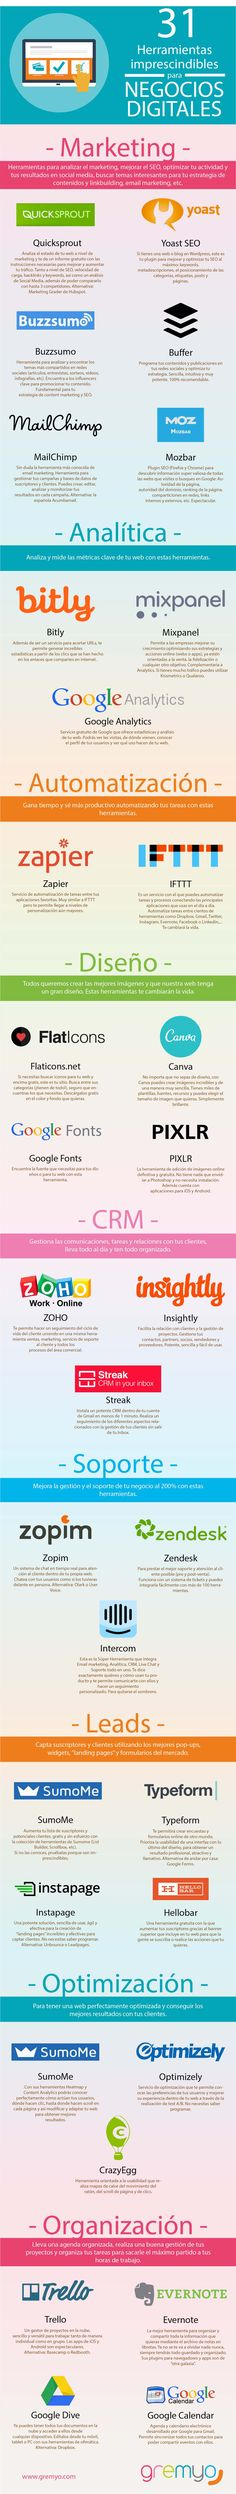 Herramientas para #negociosdigitales: #marketing, #analítica, #automatización, #diseño, #CRM, Soporte, leads, optimización, organización